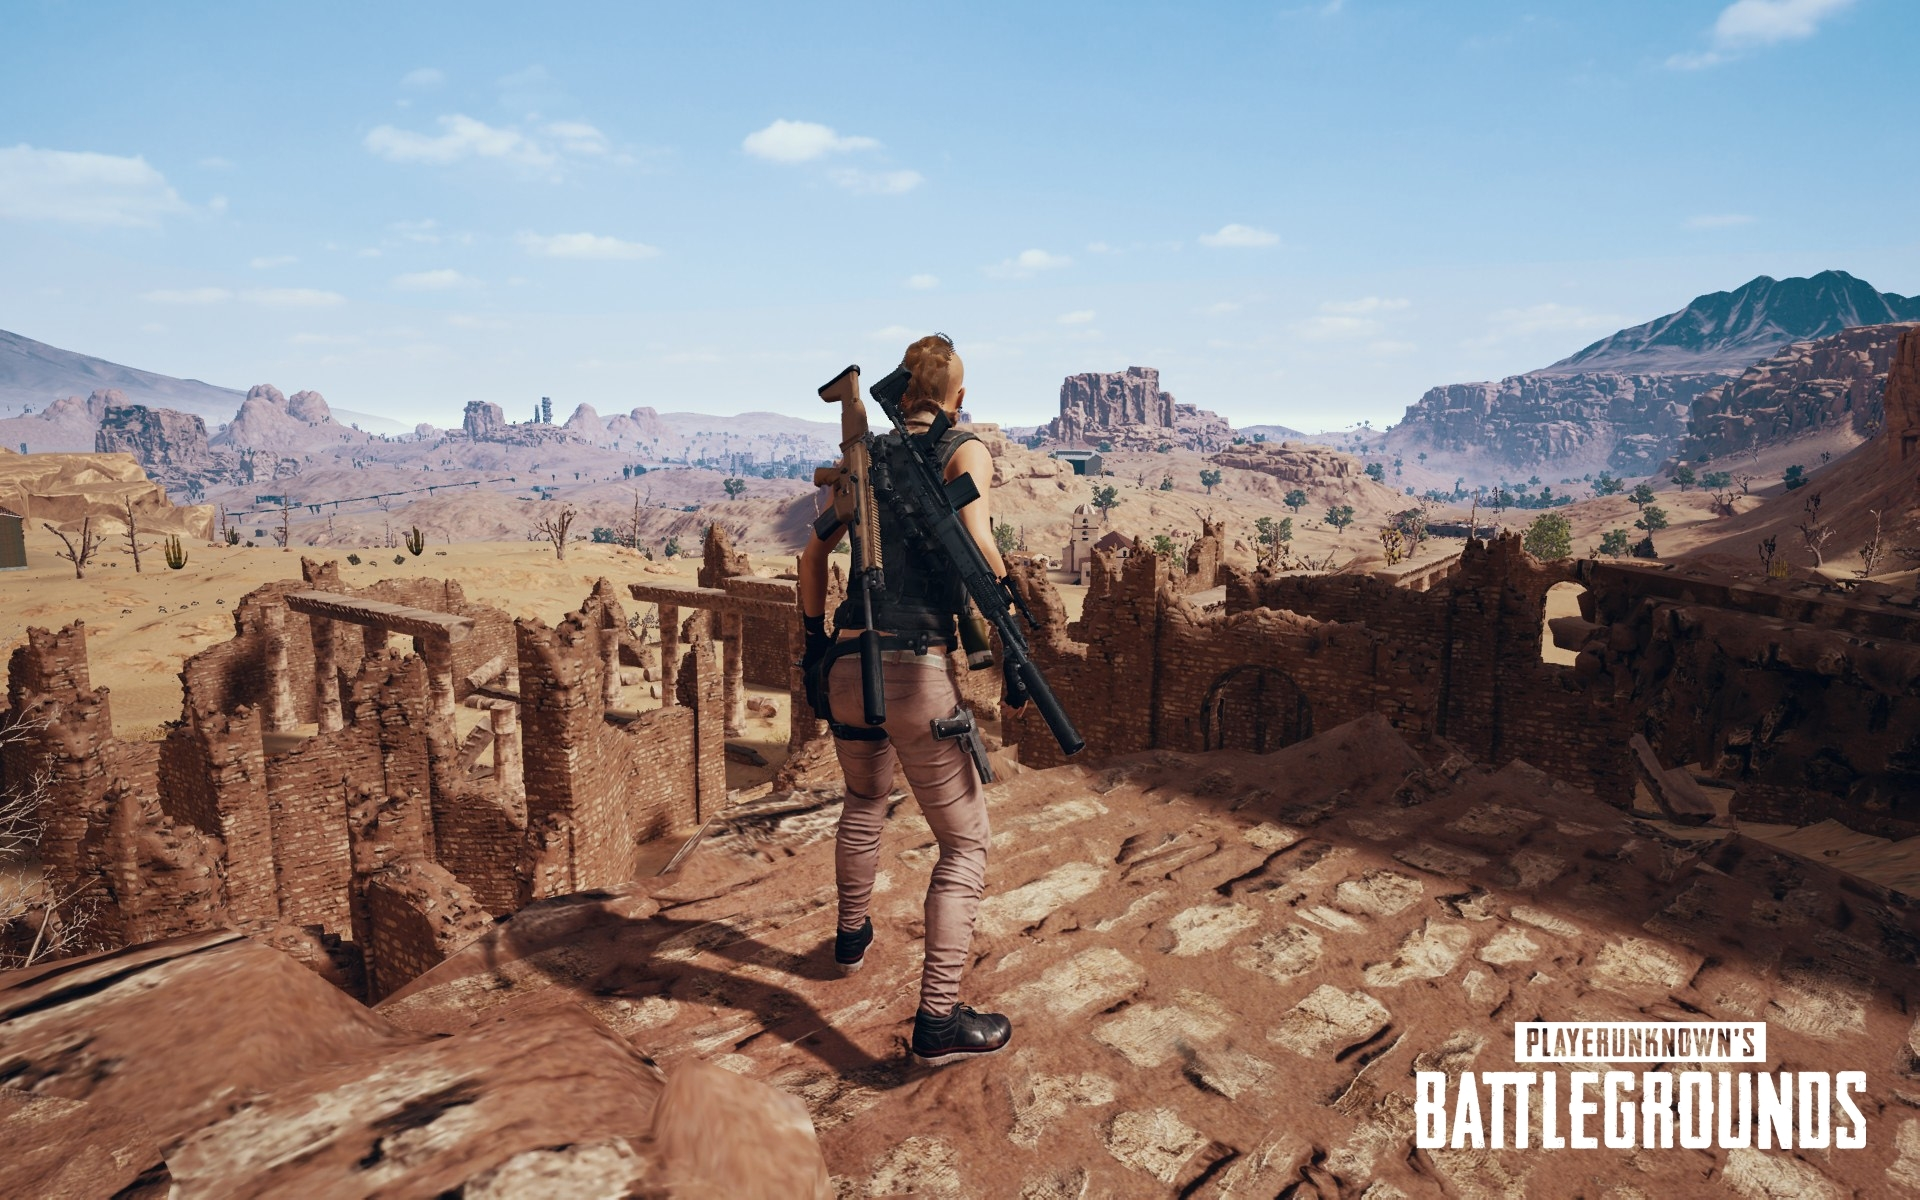 PLAYERUNKNOWN'S BATTLEGROUNDS :: Our Journey From Pre-Alpha to 1 0